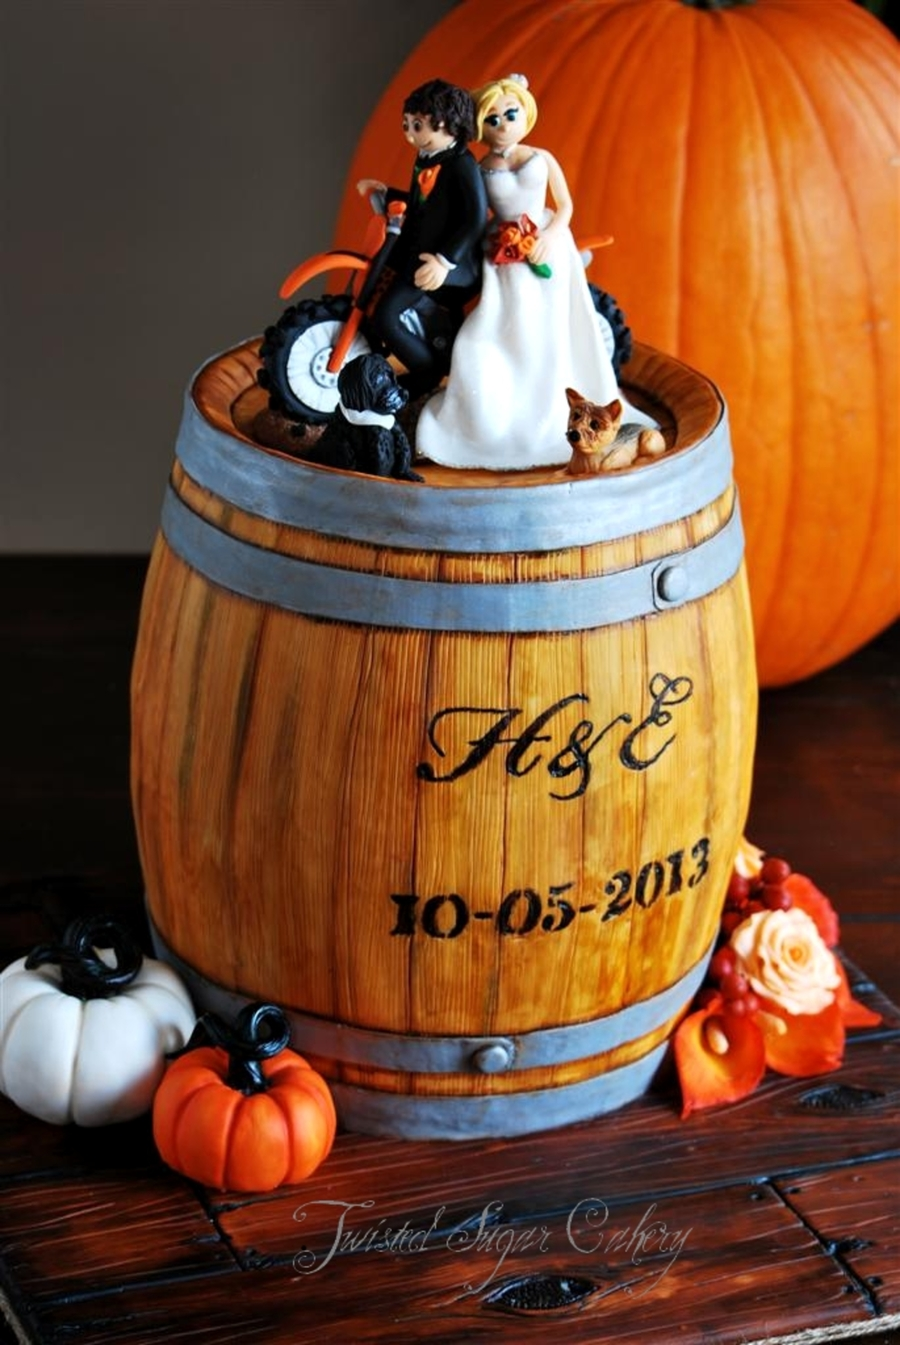 A Truly Personalized Wedding Cake A Rustic Whiskey Barrel With The Bride And Groom On A Dirt Bike With Their Two Dogs The Pumpkins Are on Cake Central